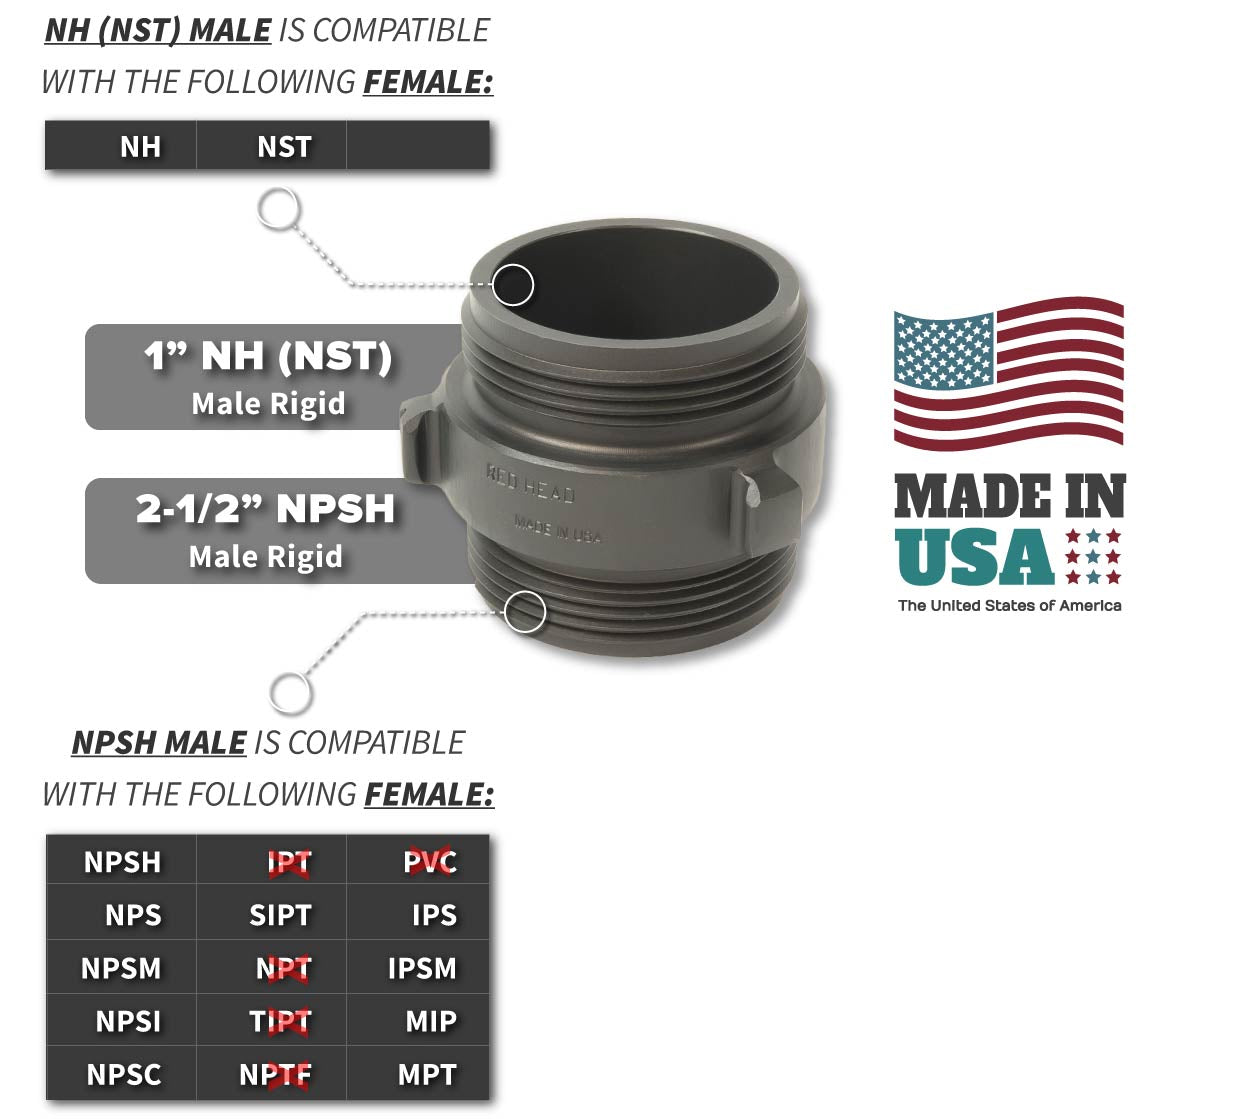 1 Inch NH-NST Male x 2.5 Inch NPSH Male Compatibility Thread Chart